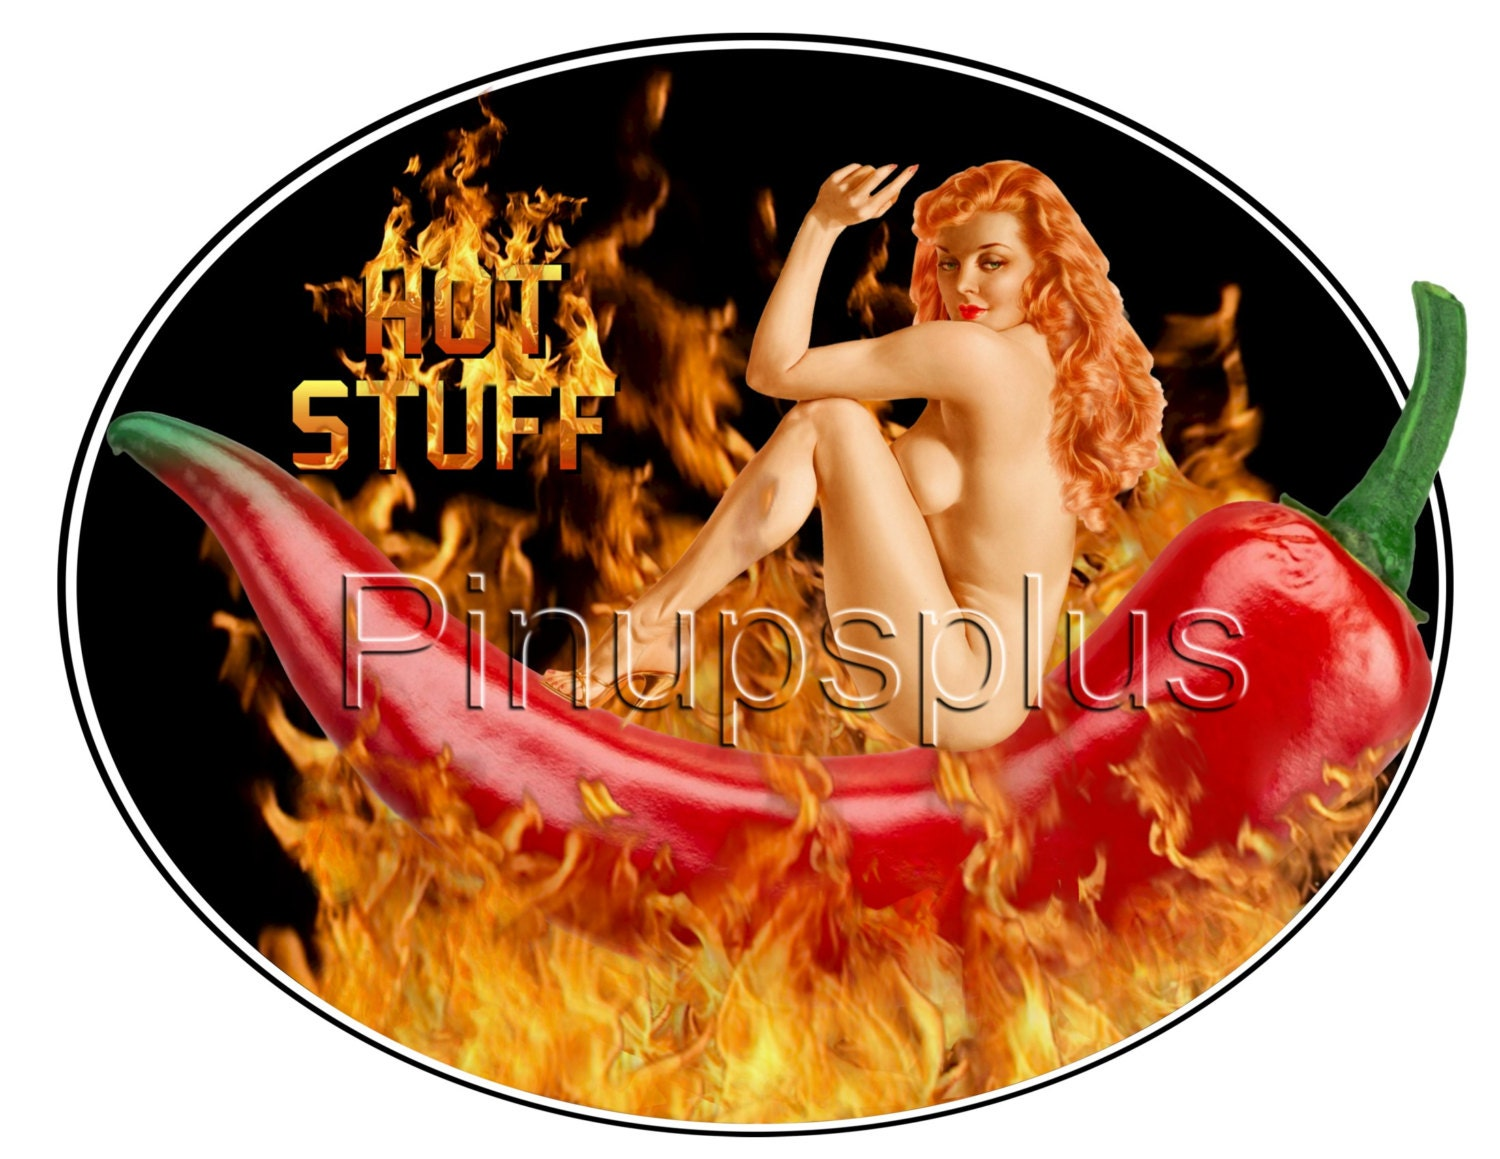 Red Hot Flaming Chili Pepper Sexy Nude Pinup Girl Watertersde-8343